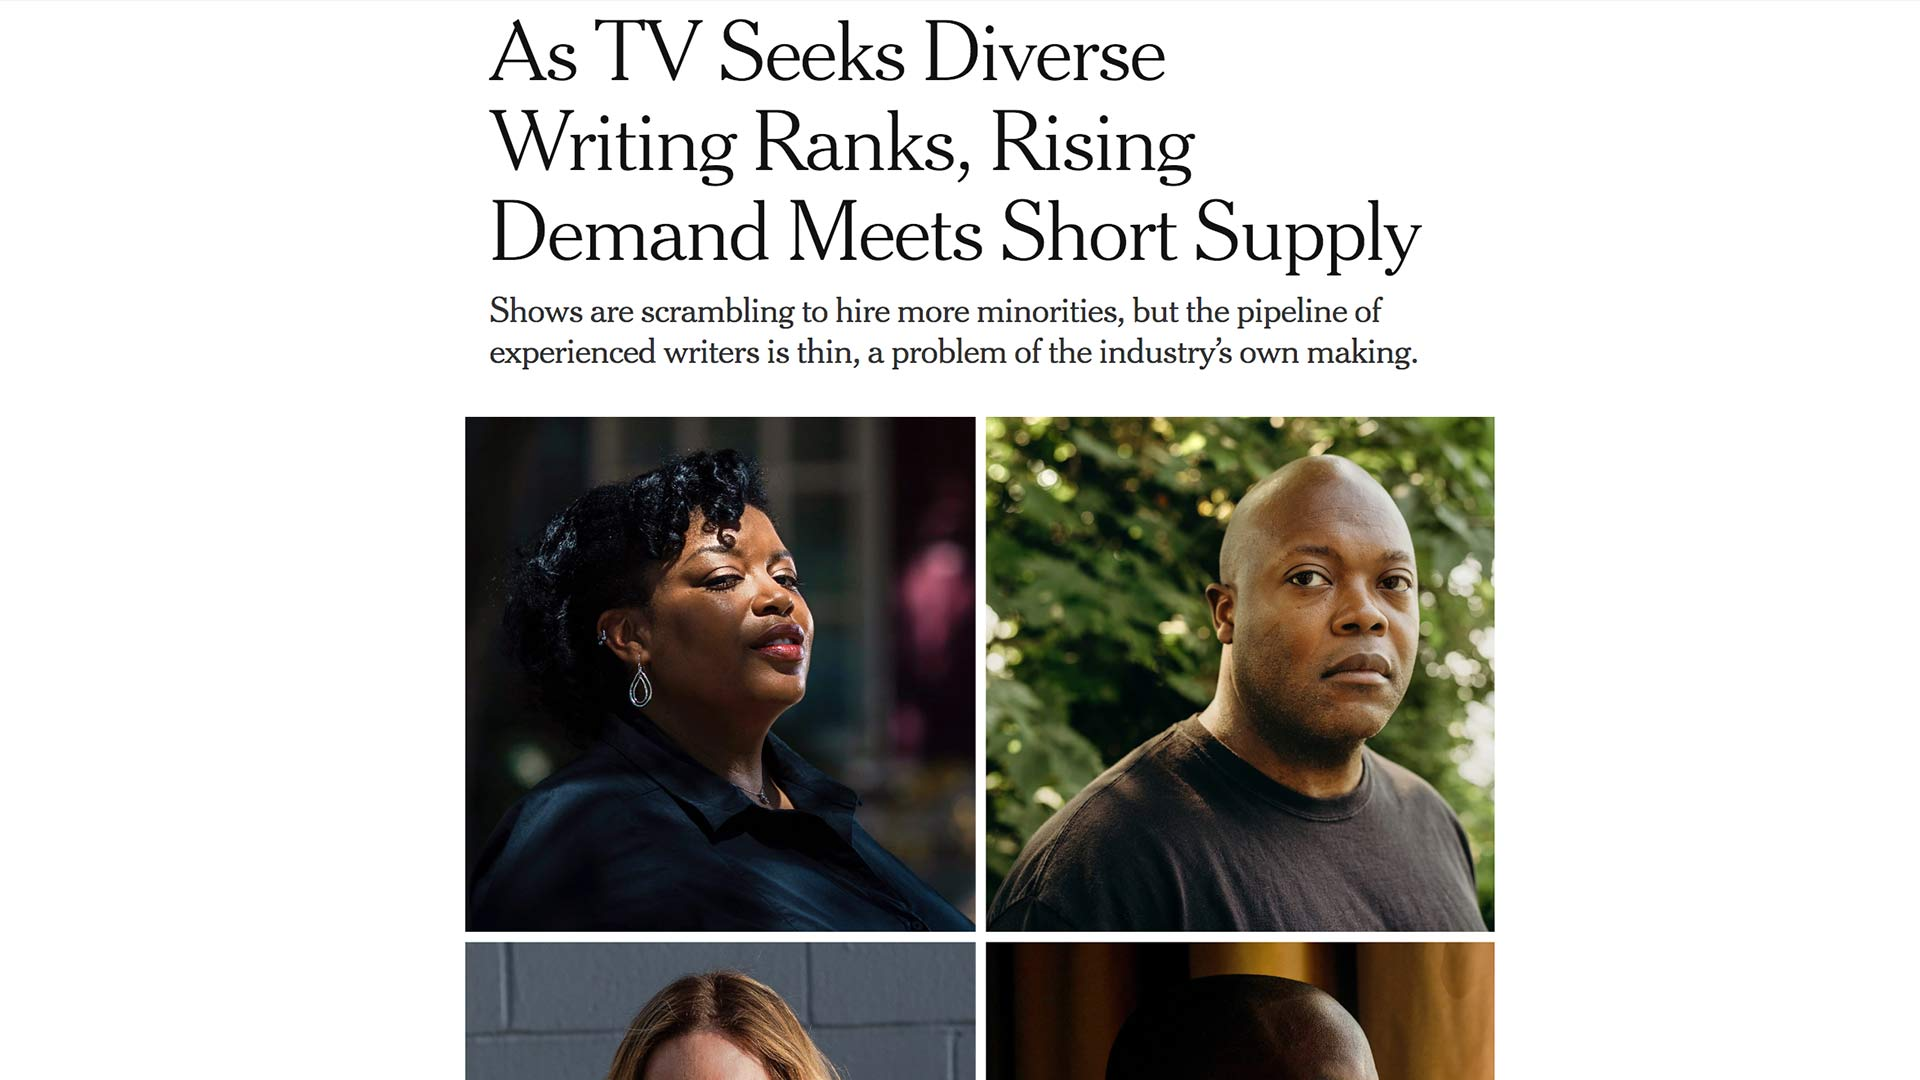 Fairness Rocks News As TV Seeks Diverse Writing Ranks, Rising Demand Meets Short Supply